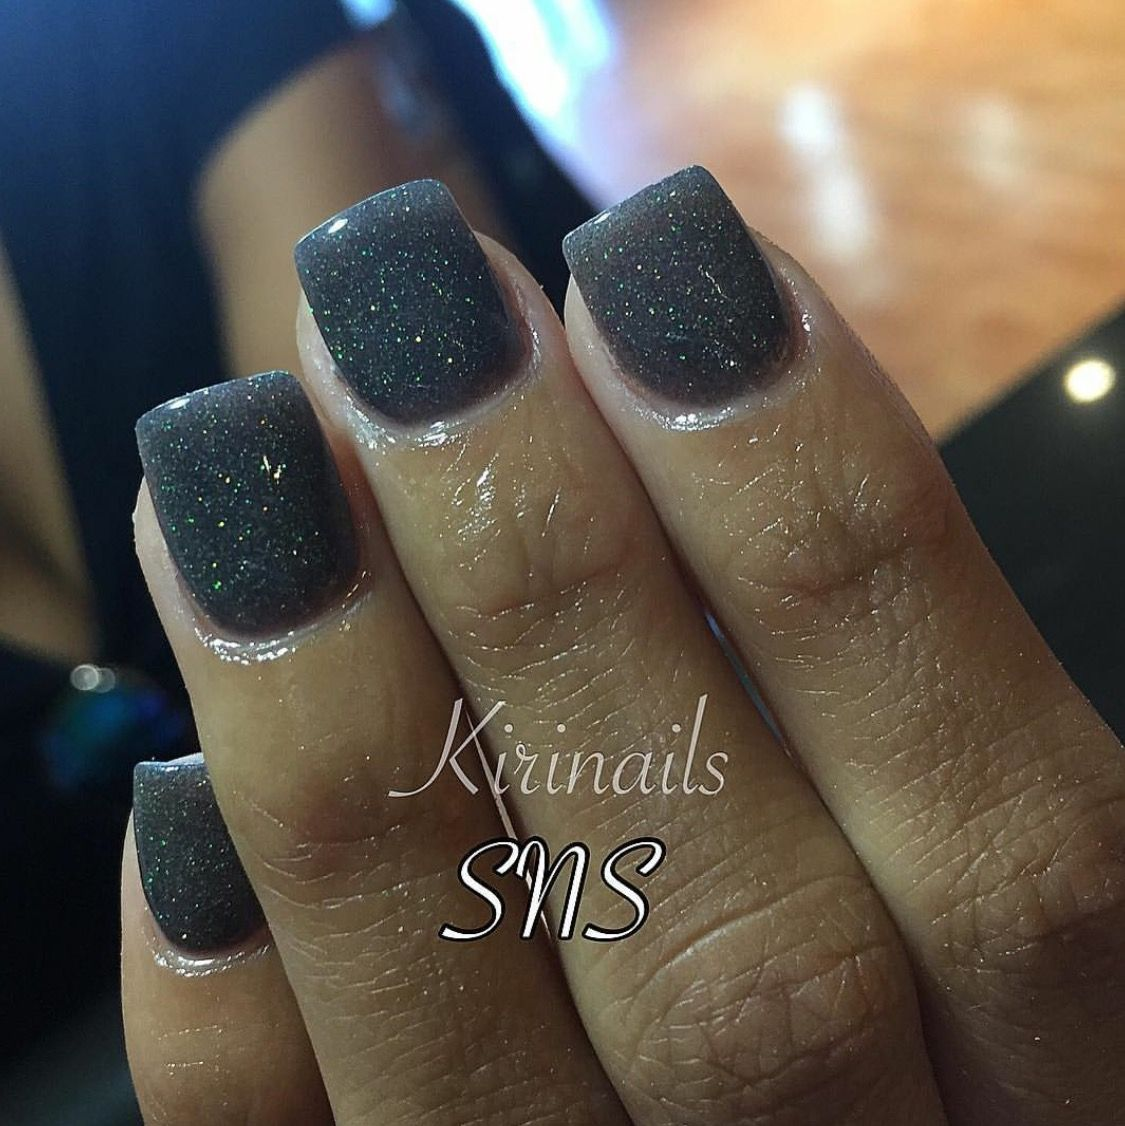 Black with glitter sns dipping powder nails at angel nail spa 2 black with glitter sns dipping powder nails at angel nail spa 2 prinsesfo Image collections